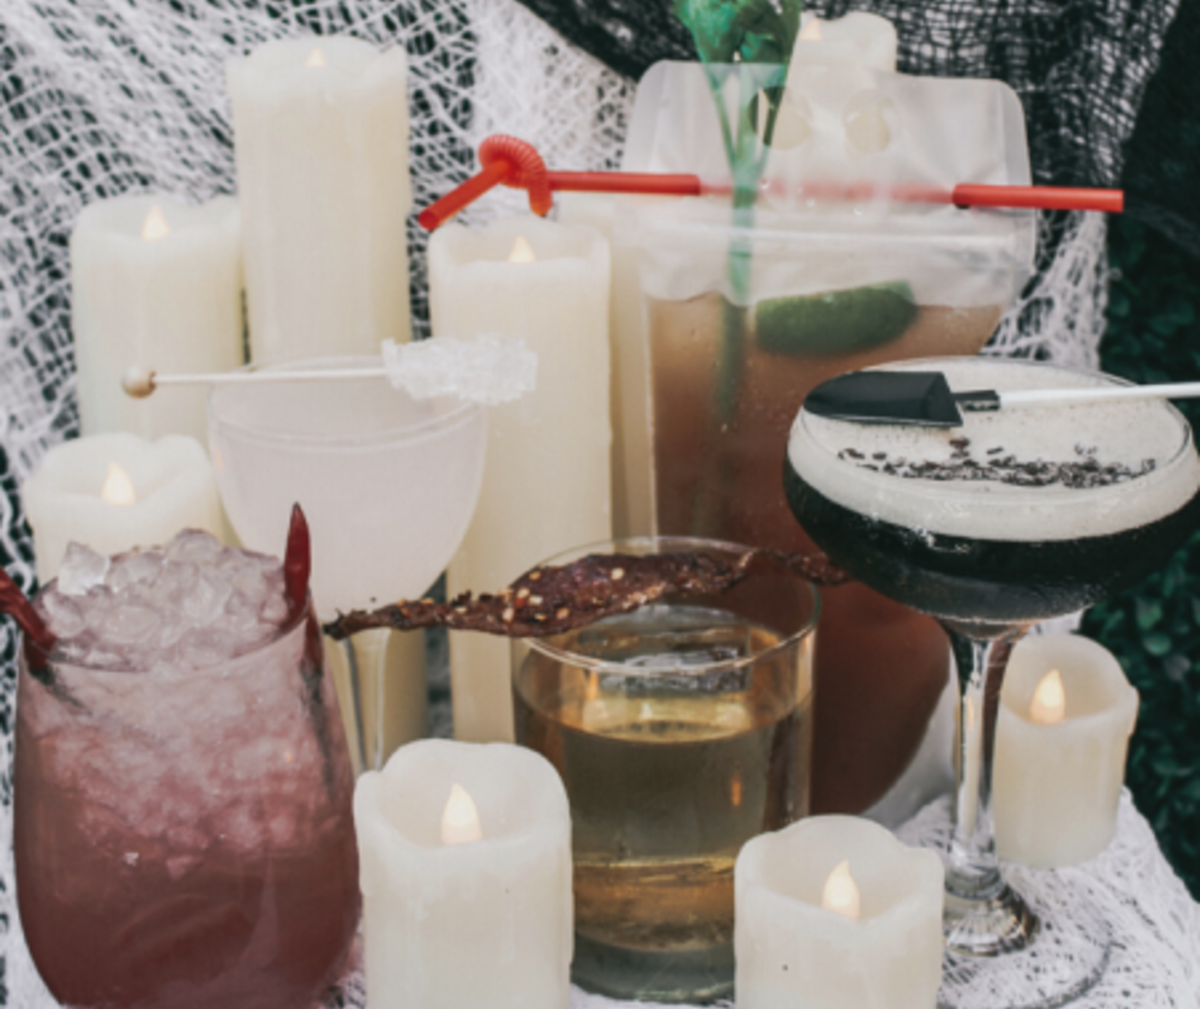 Halloween themed cocktails at Tanner's & Treehouse Lounge at Paséa Hotel & Spa